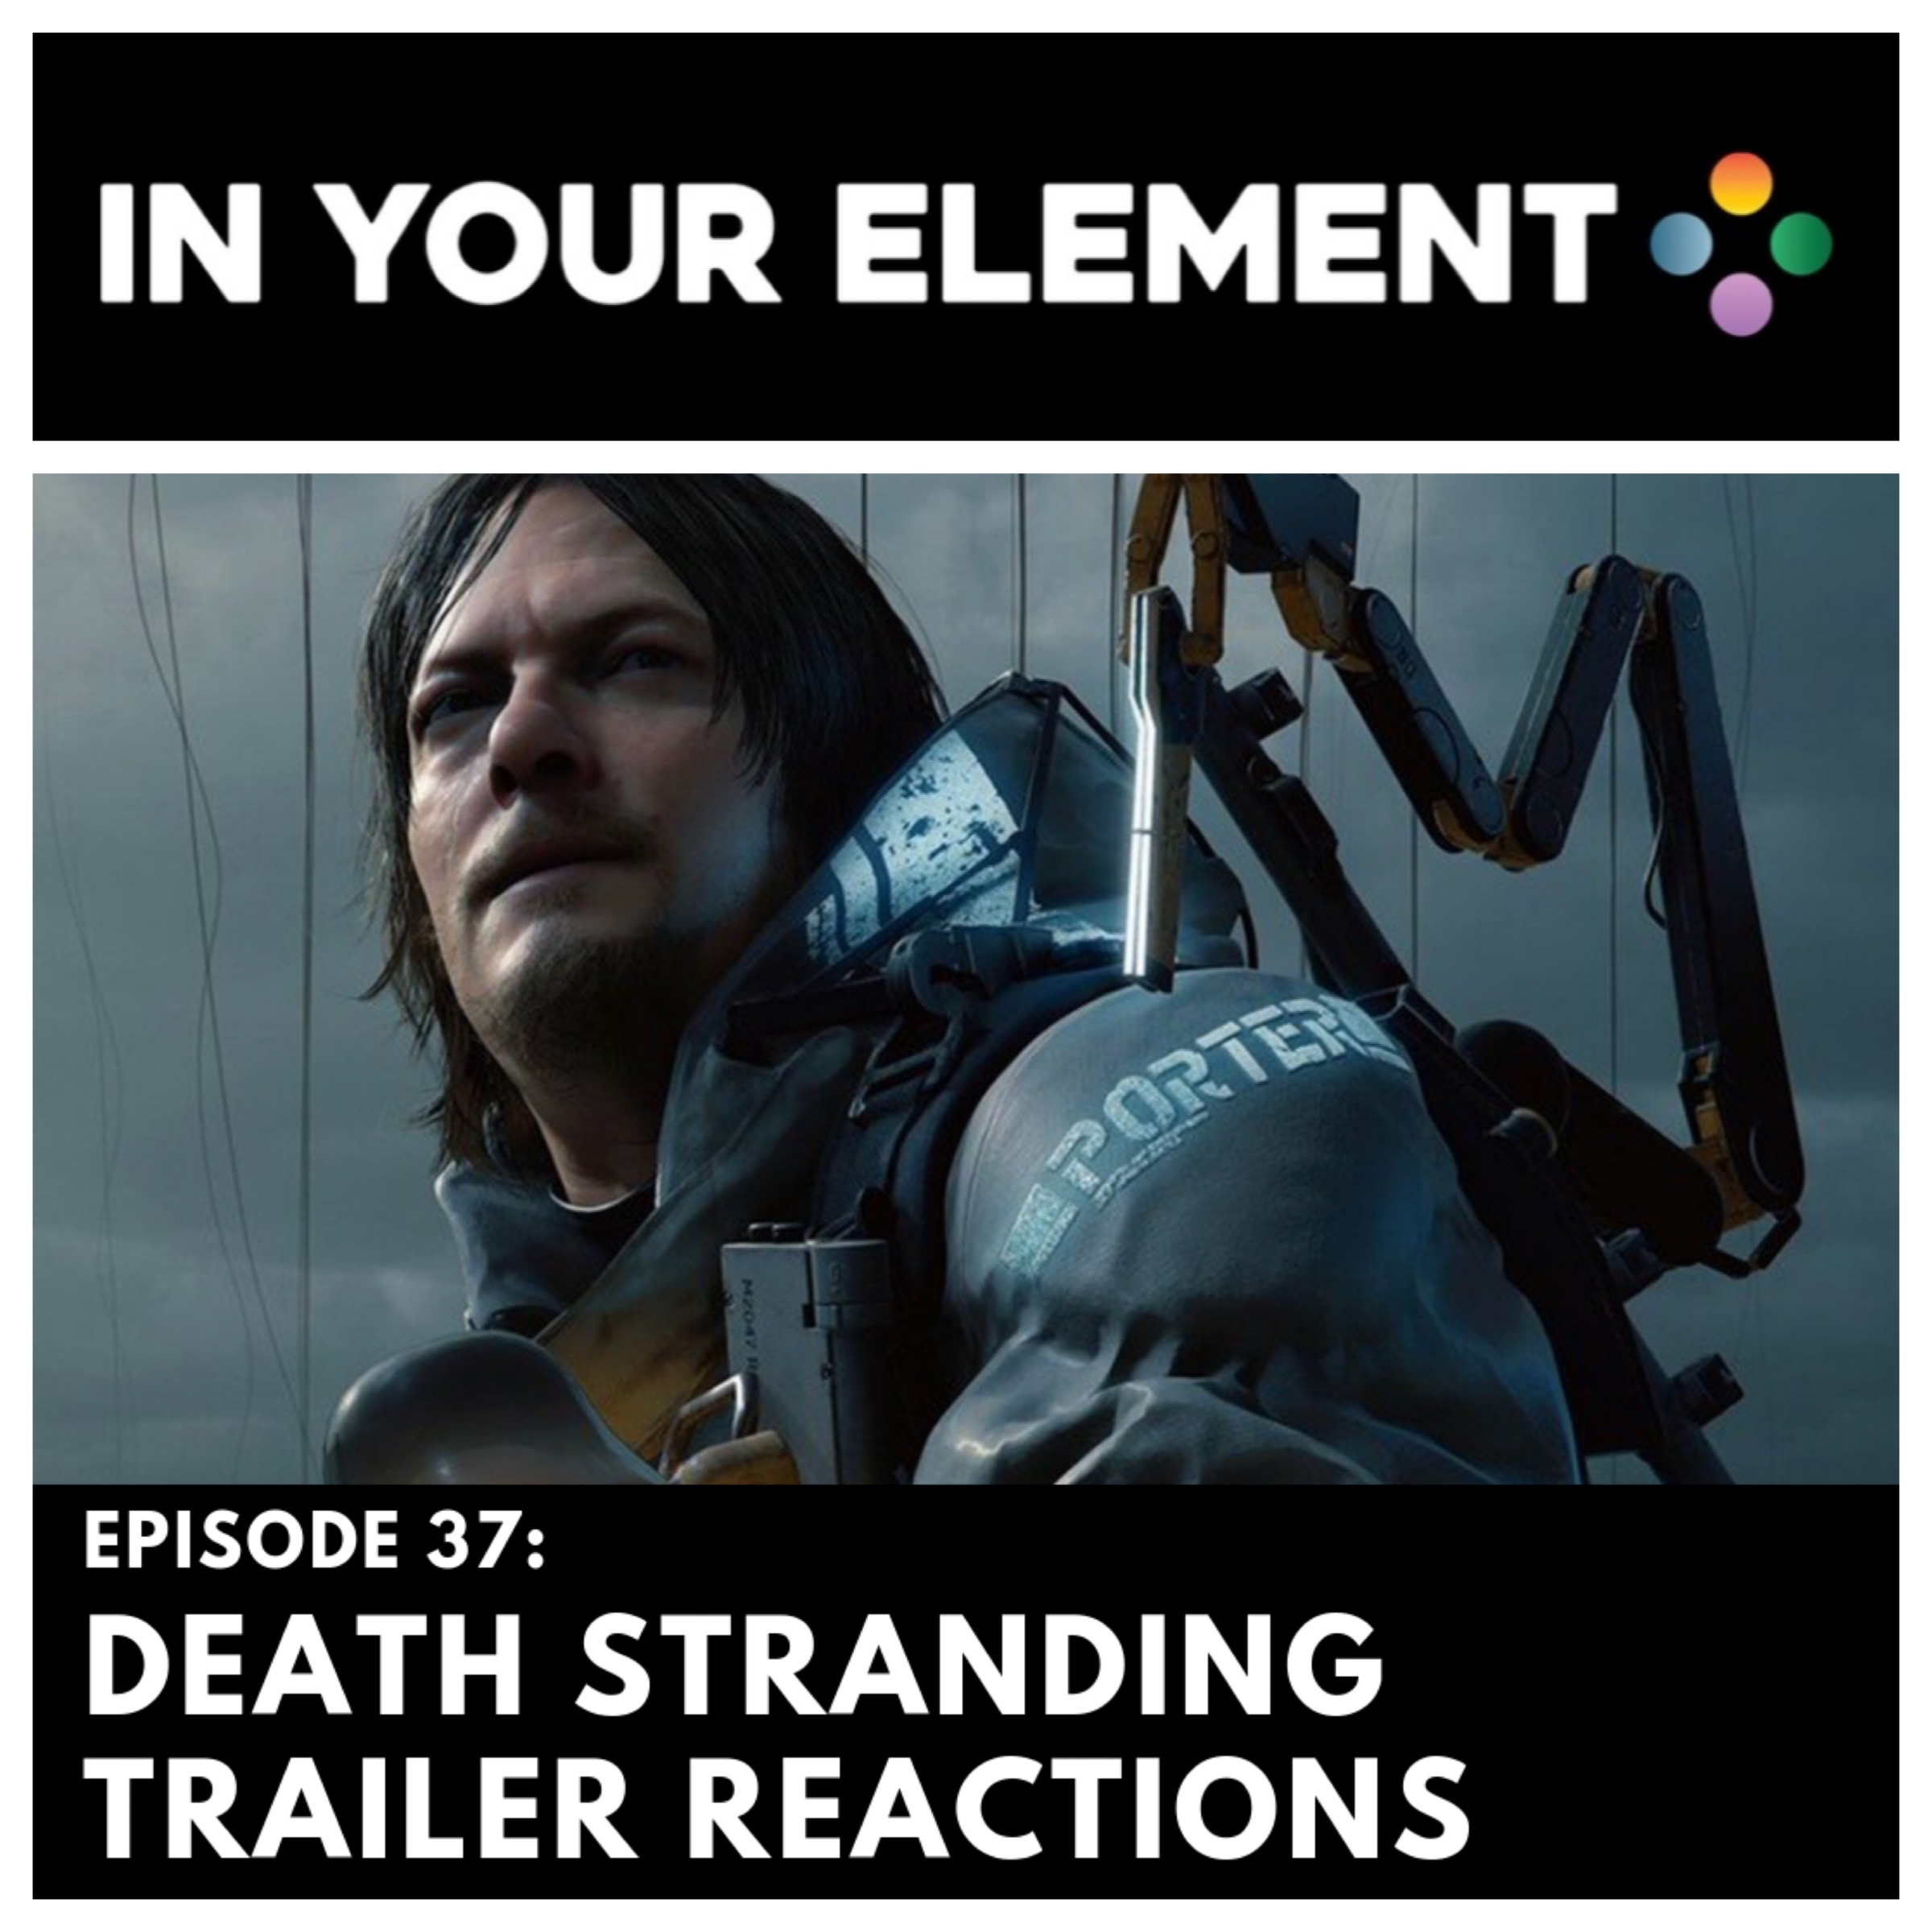 in your element Episode 37: Death Stranding Trailer Reactions